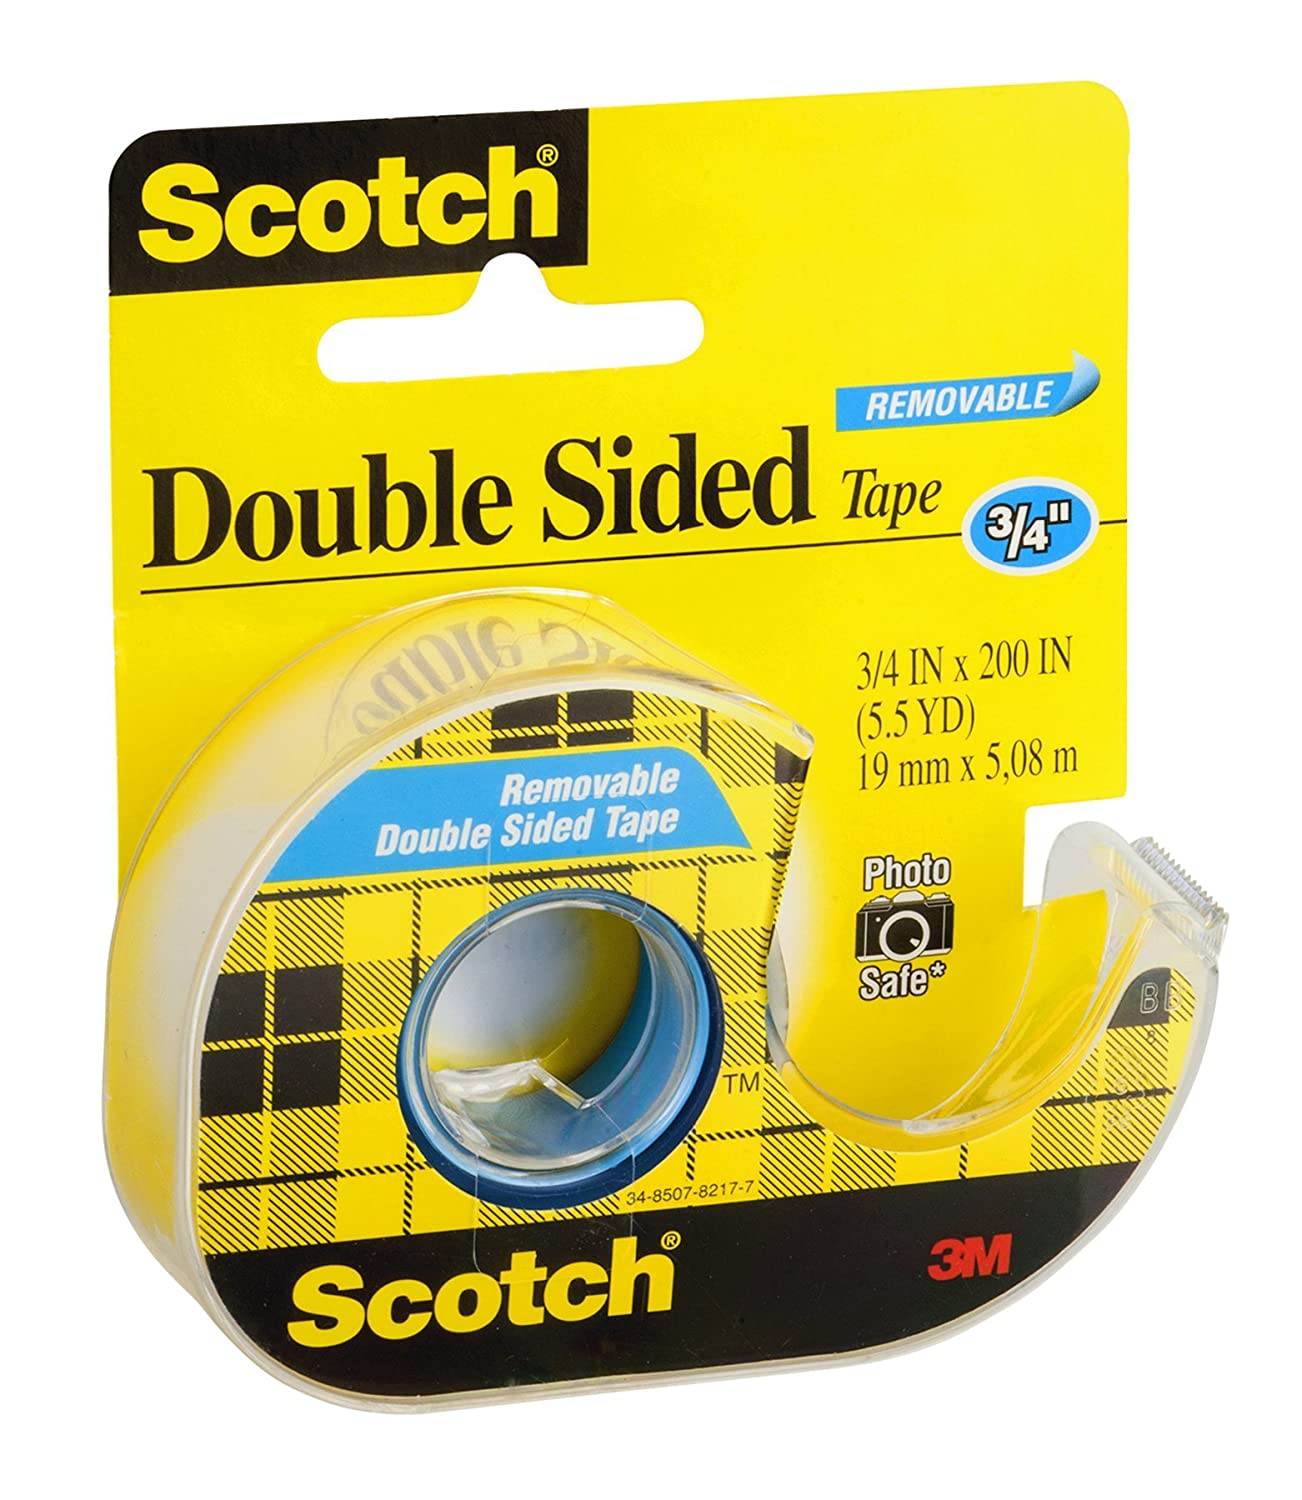 3M 238 3//4 x 200 Scotch Double Sided Removable Tape 3m Co.